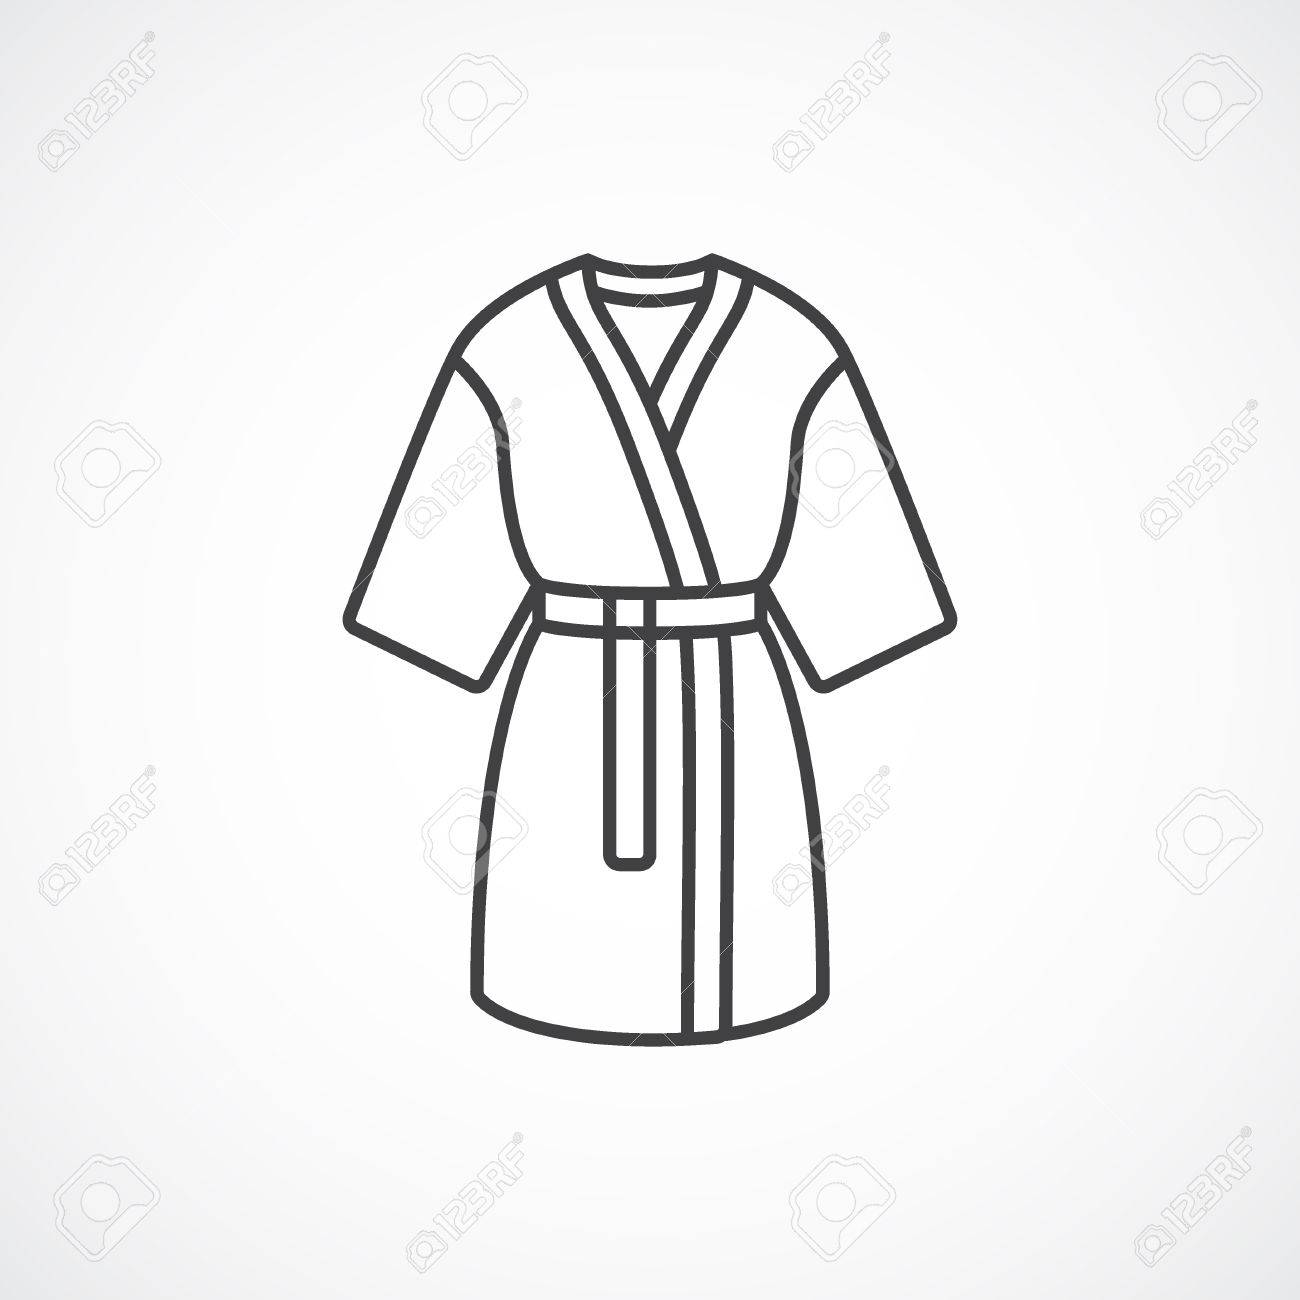 Free White Dress Clipart robe, Download Free Clip Art on Owips.com.